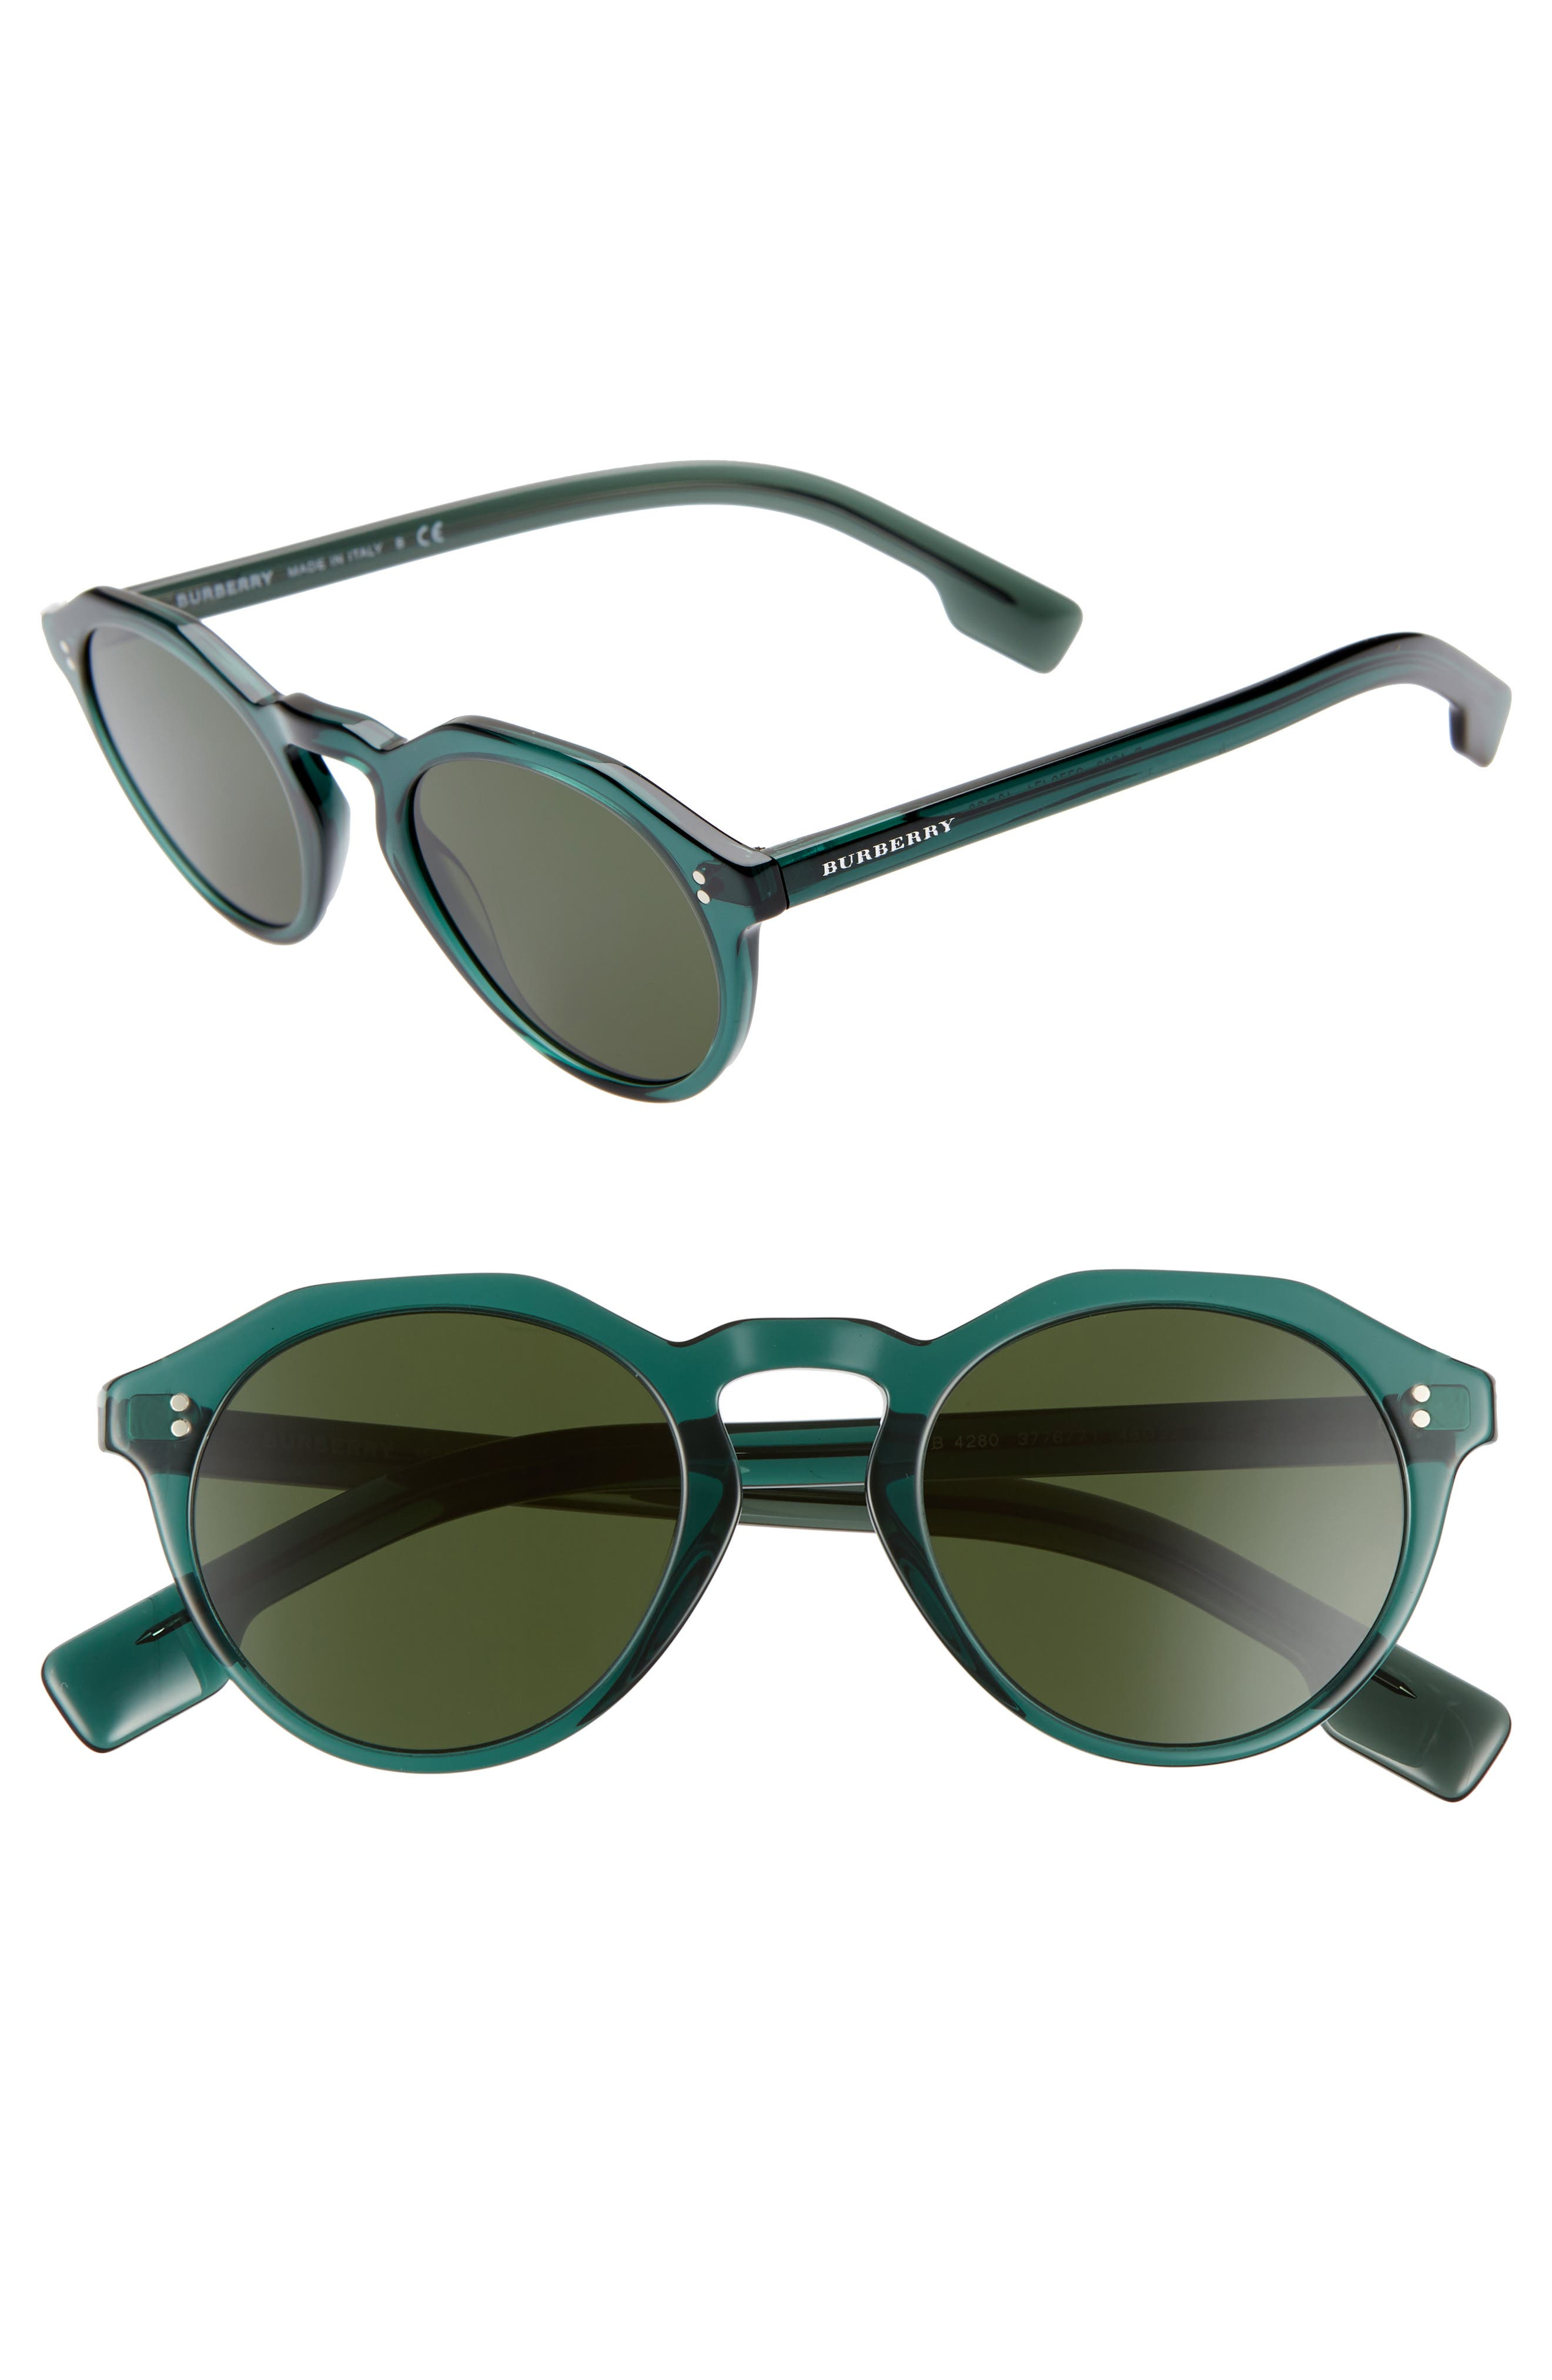 48mm Round Sunglasses,                         Main,                         color, GREEN/ GREEN SOLID